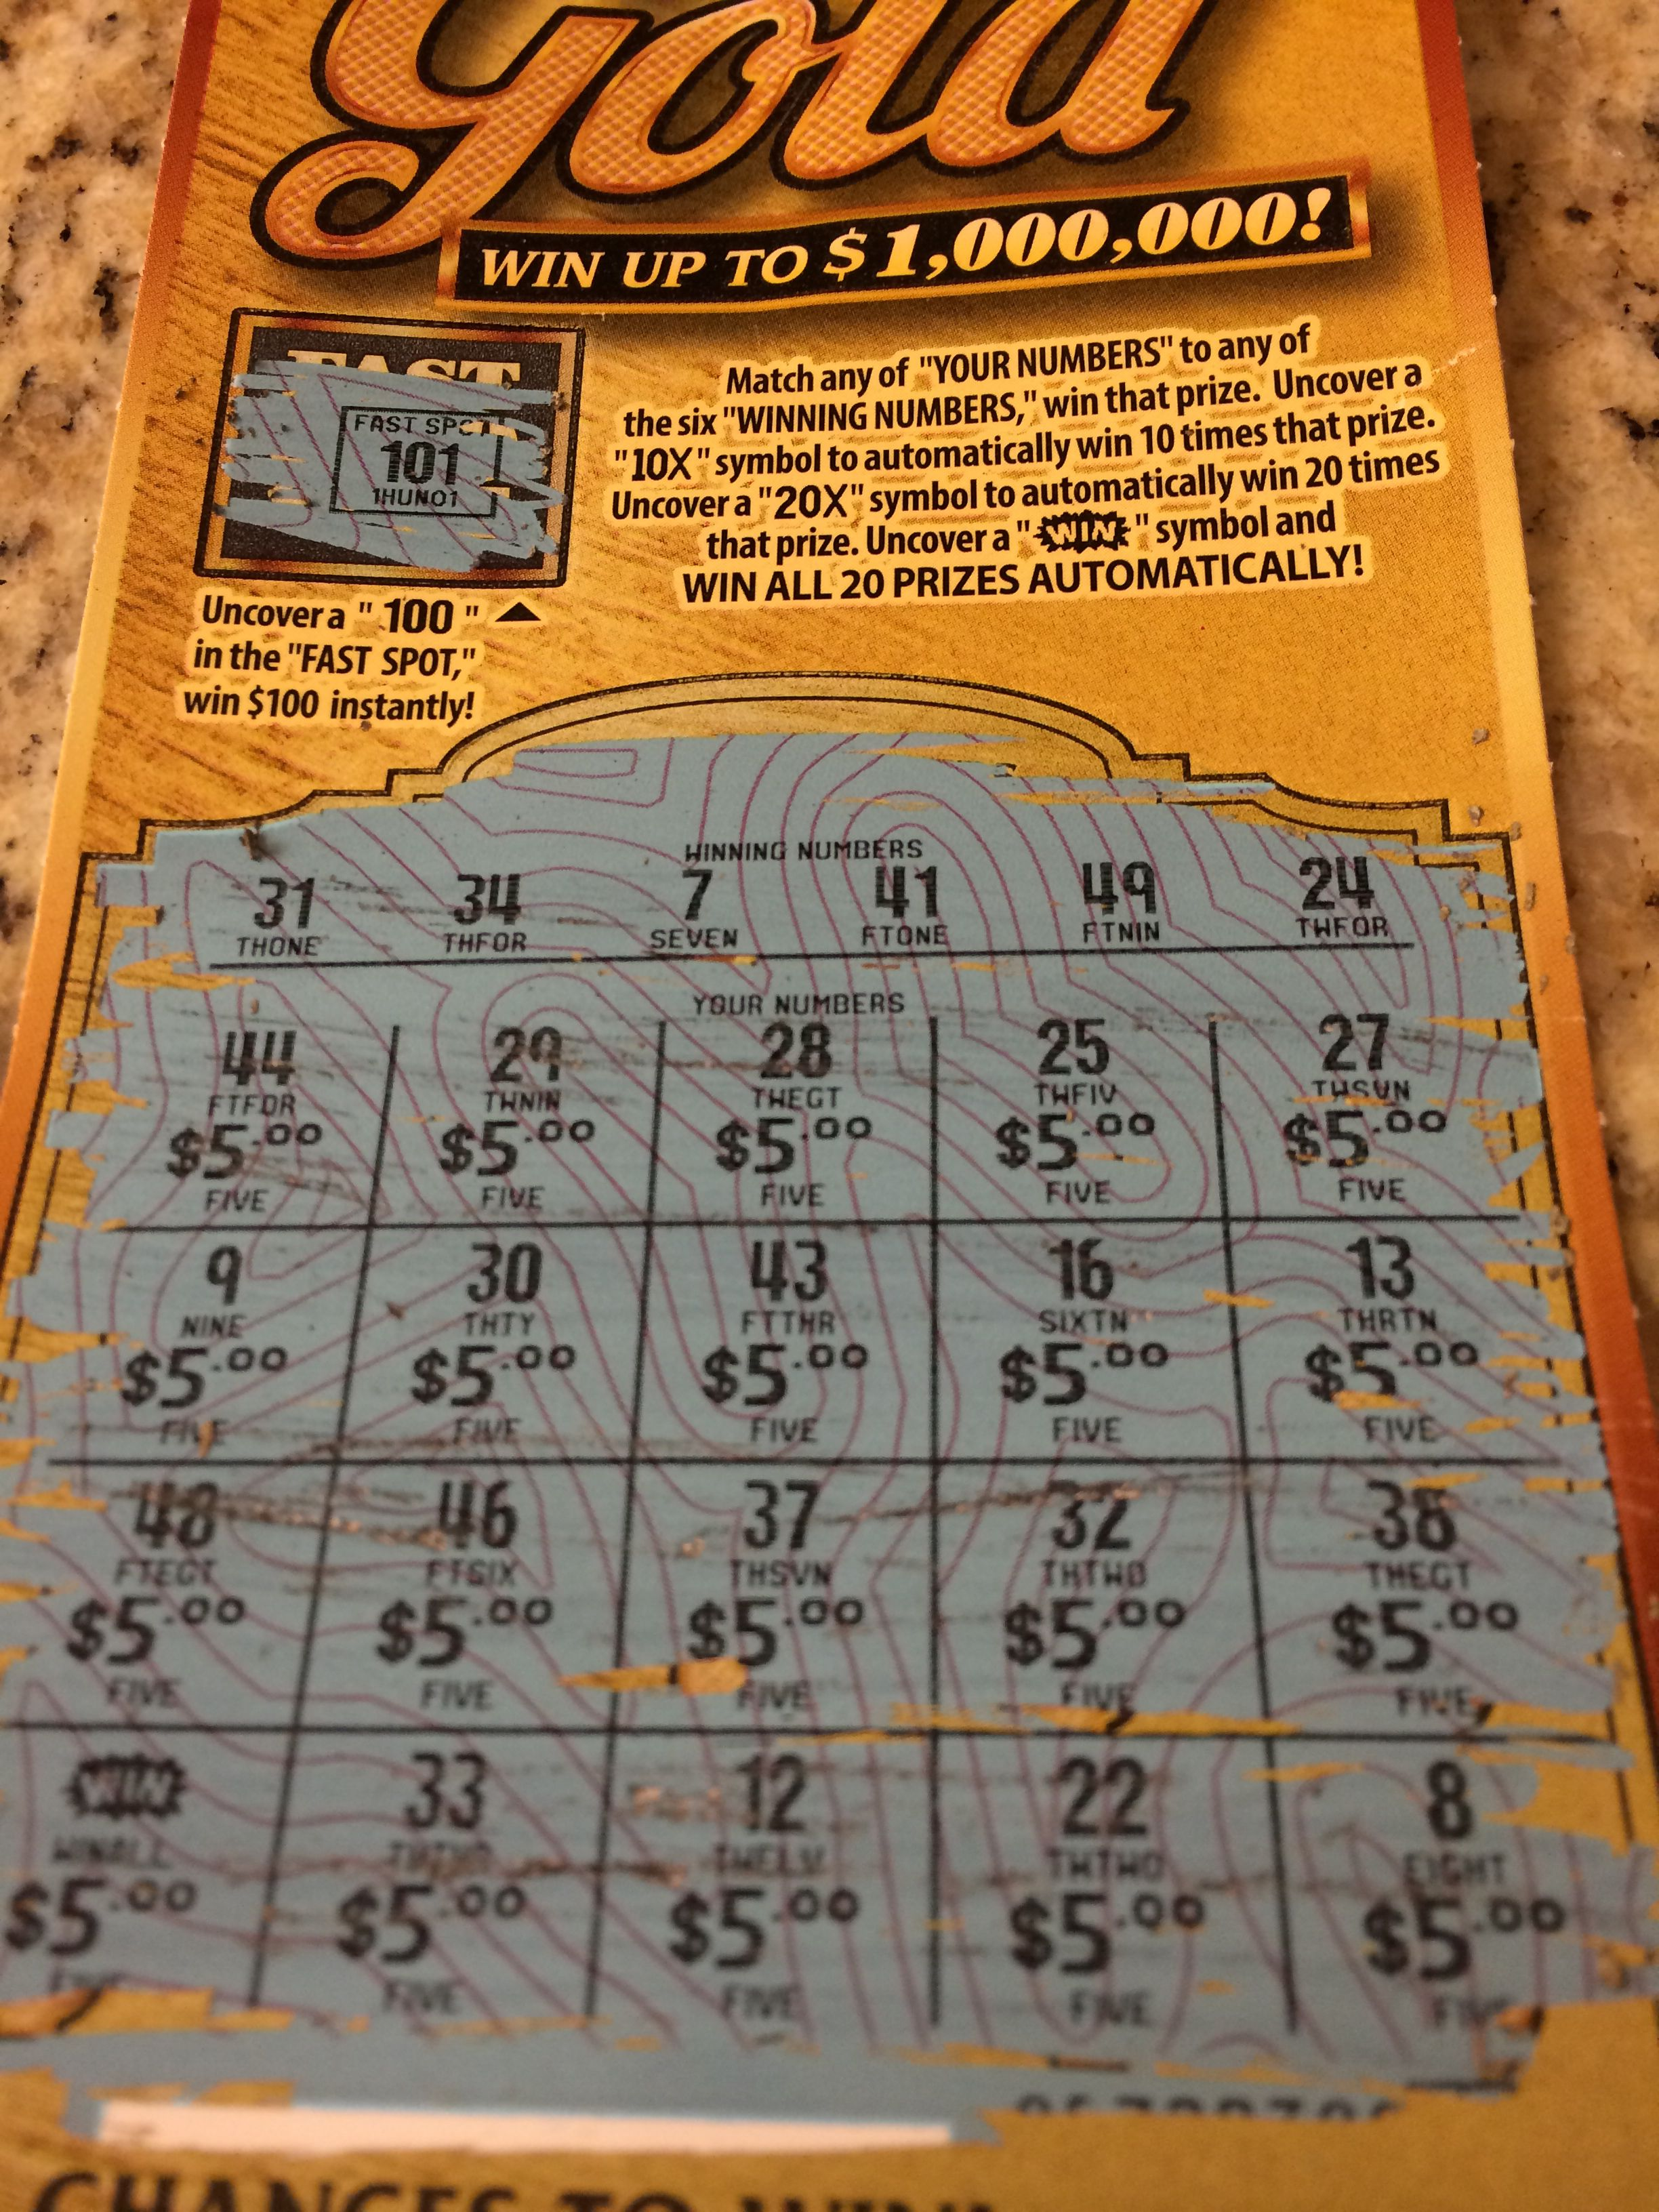 I just scratched this lottery ticket and I uncovered a WIN symbol so I get all 20 prizes there all five dollars but it's still pretty good!!!